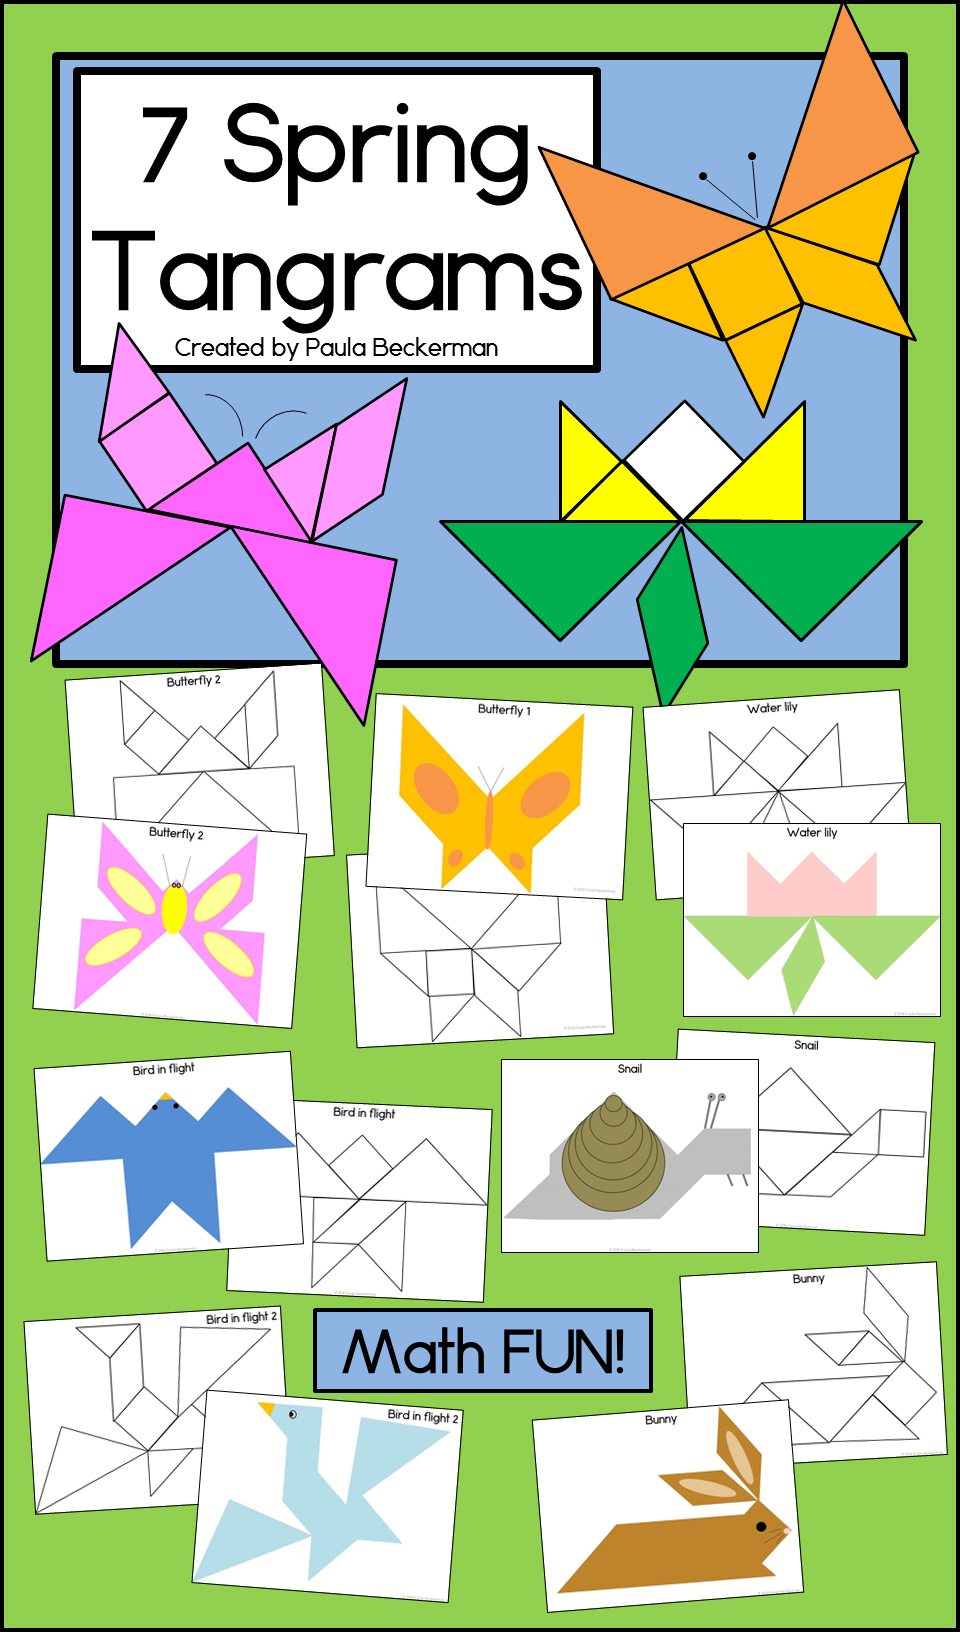 medium resolution of Spring themed tangrams for fun math learning with shapes. Includes 2  butterflies